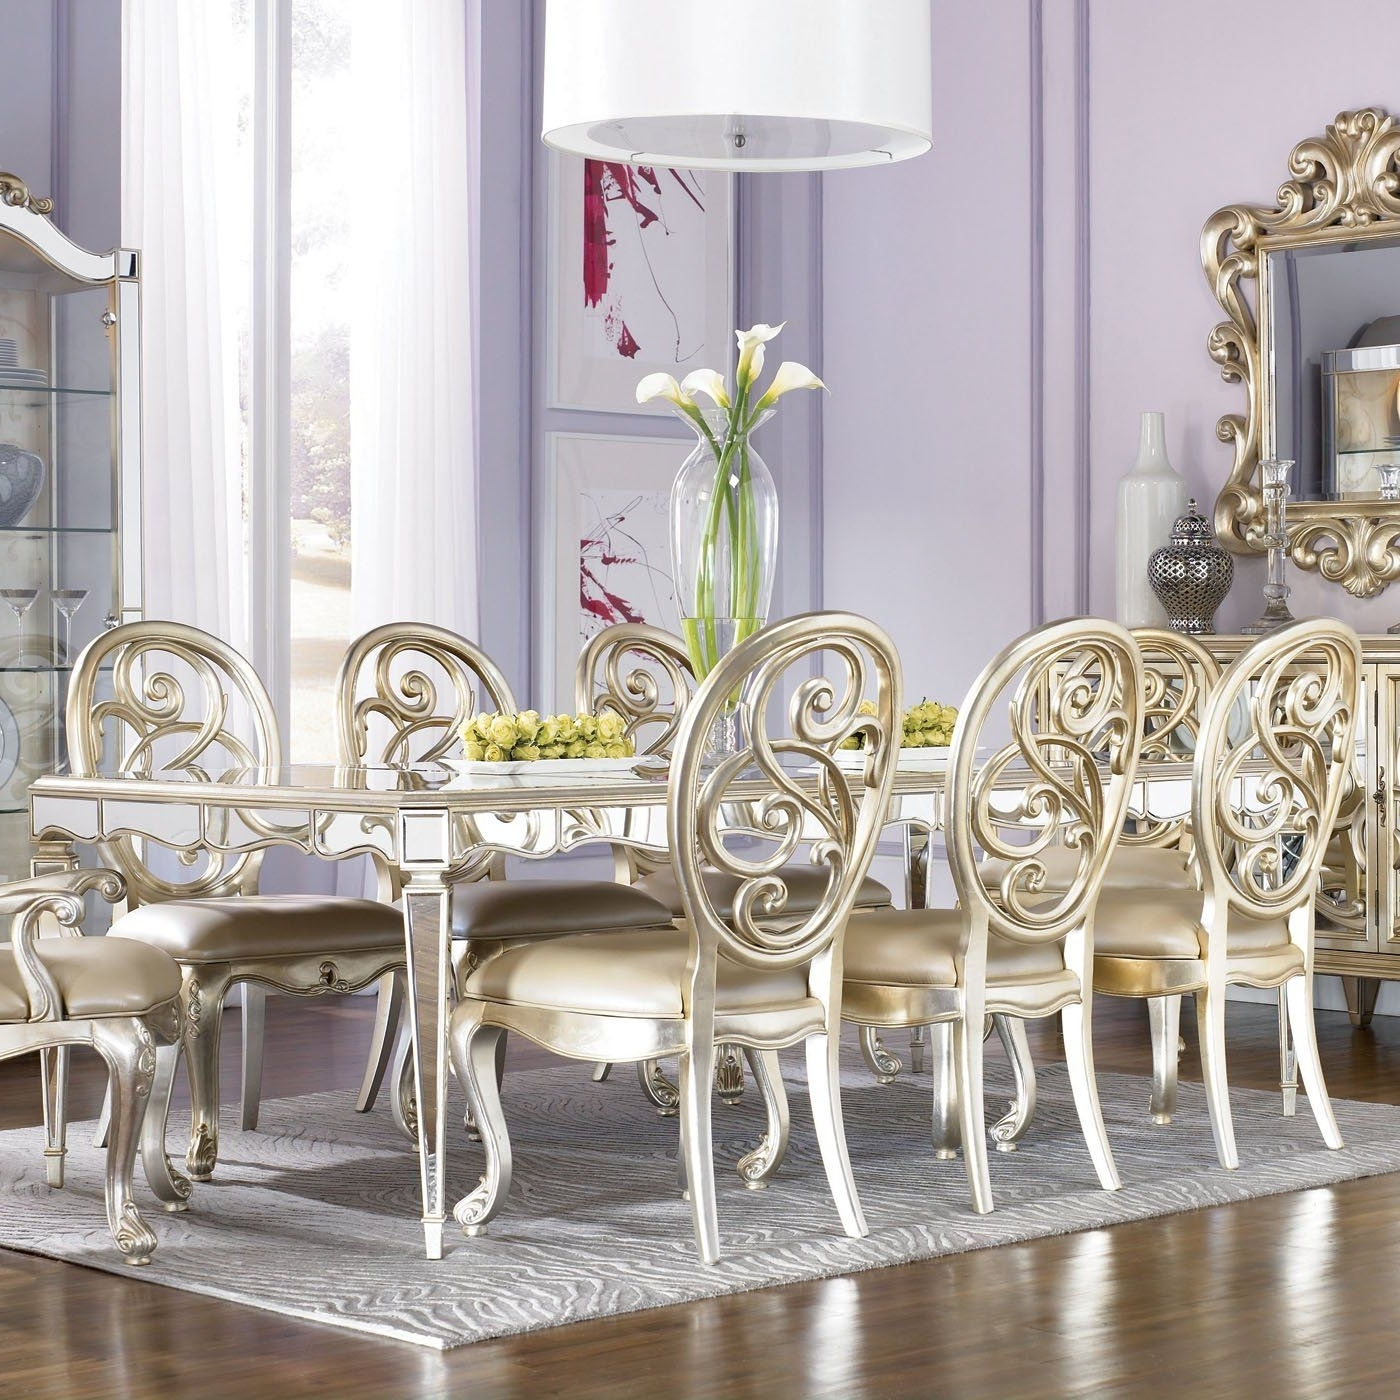 Popular Antique Mirror Dining Tables Intended For American Drew 908 760 Jessica Mcclintock Couture Antique Mirror Leg (Gallery 8 of 25)